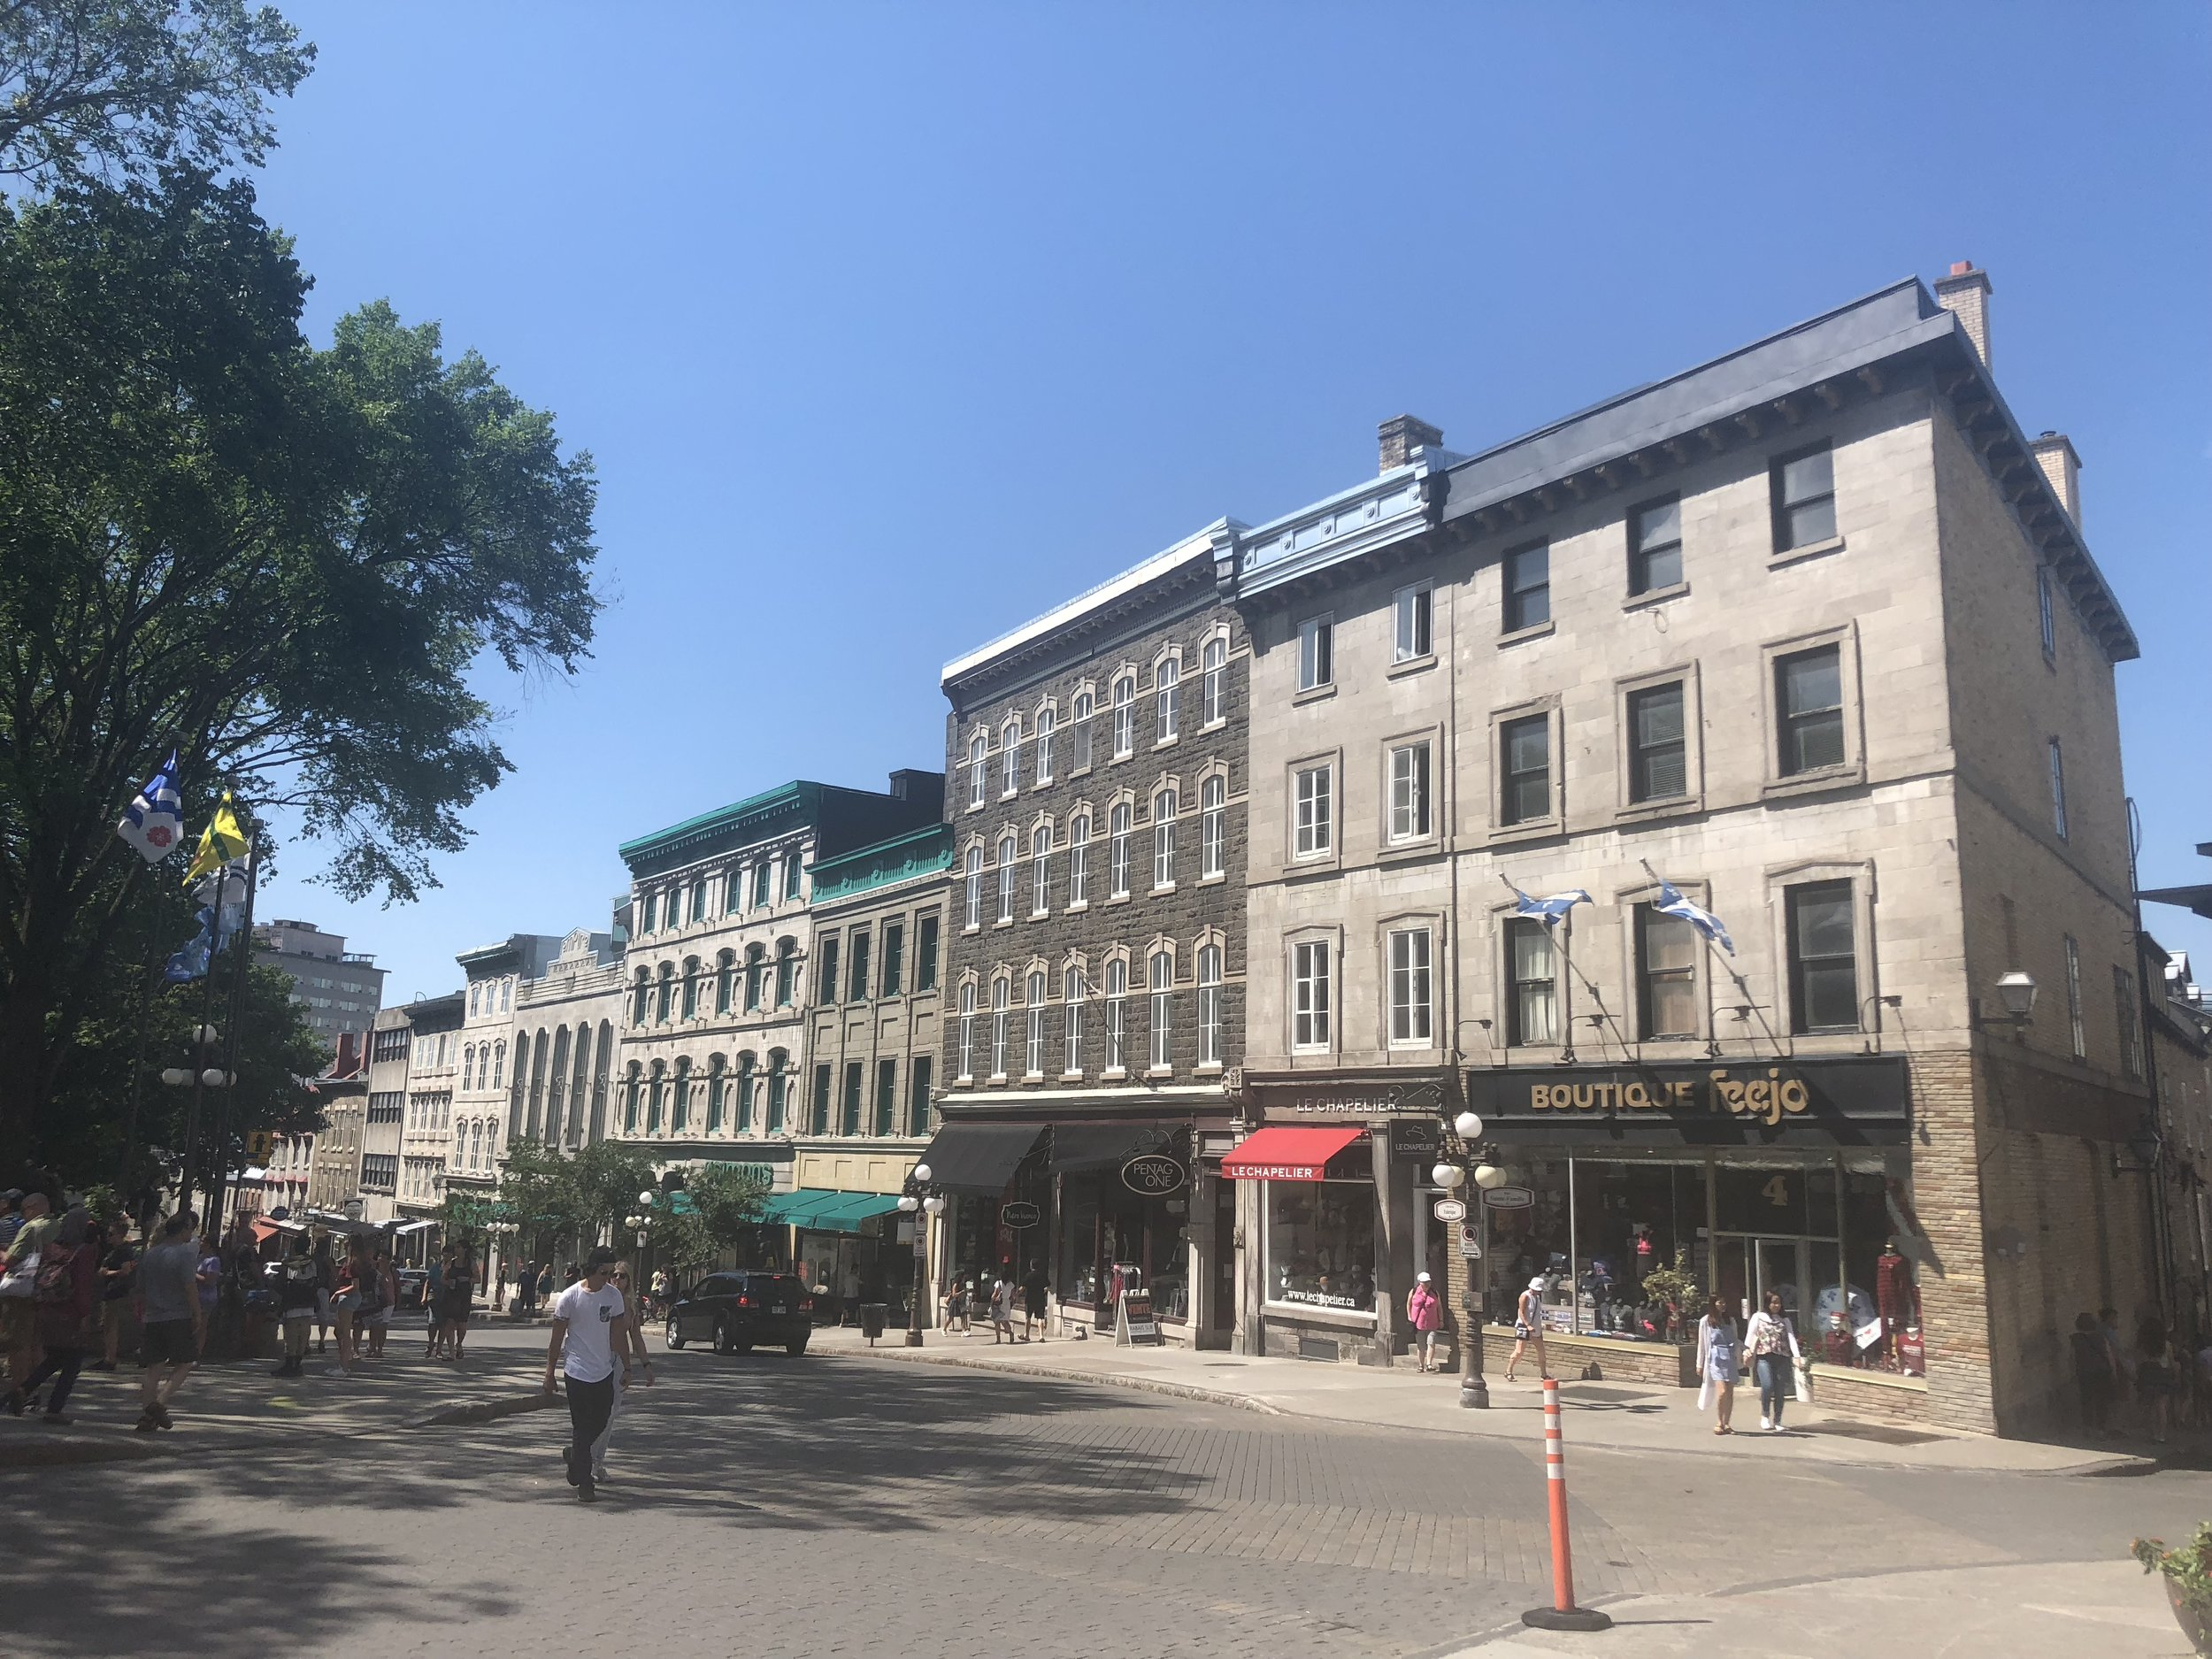 Downtown Quebec City